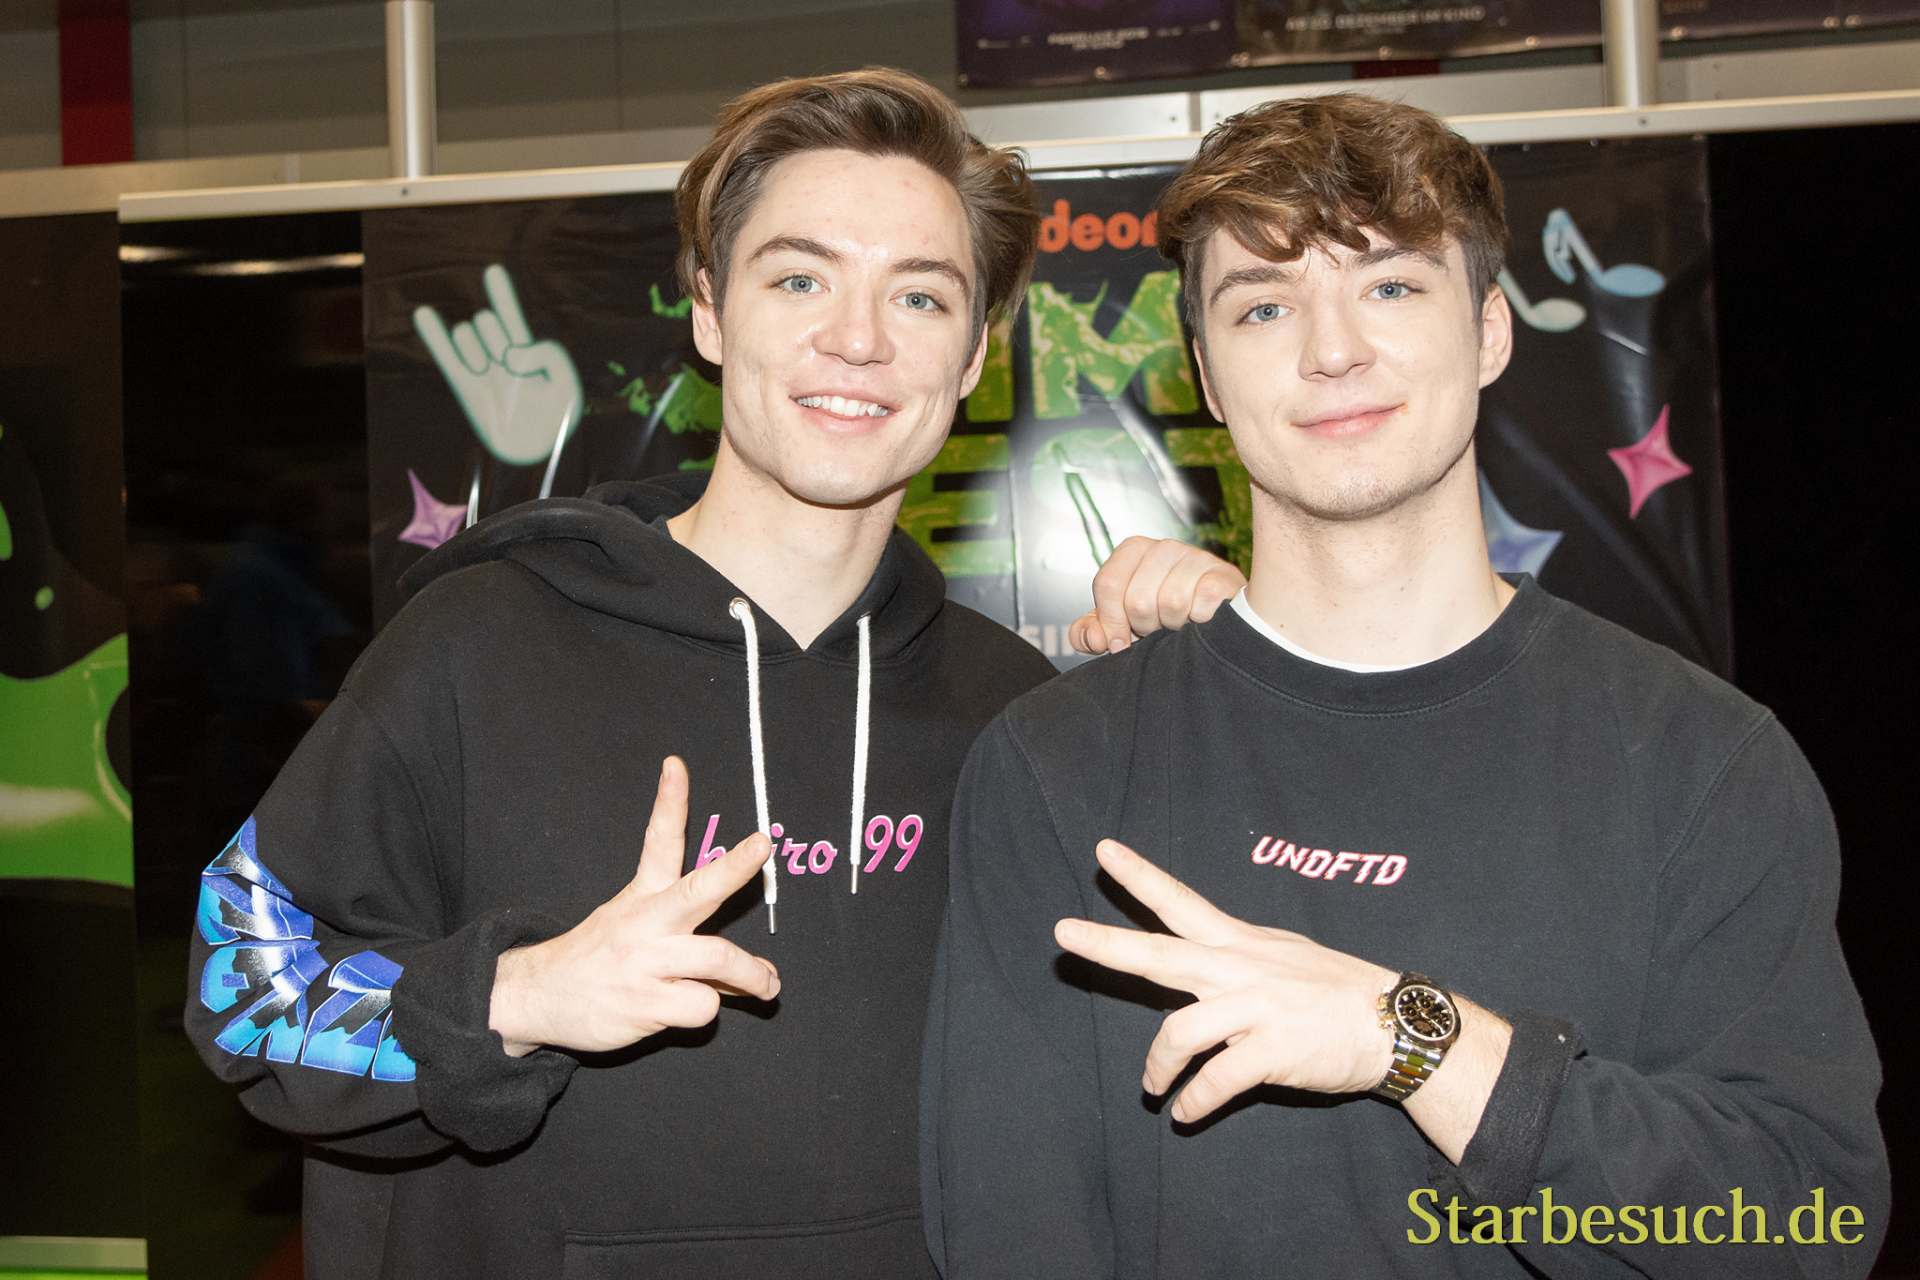 DORTMUND, GERMANY - December 1st 2018: Die Lochis (German YouTube personalities) at German Comic Con Dortmund, a two day fan convention